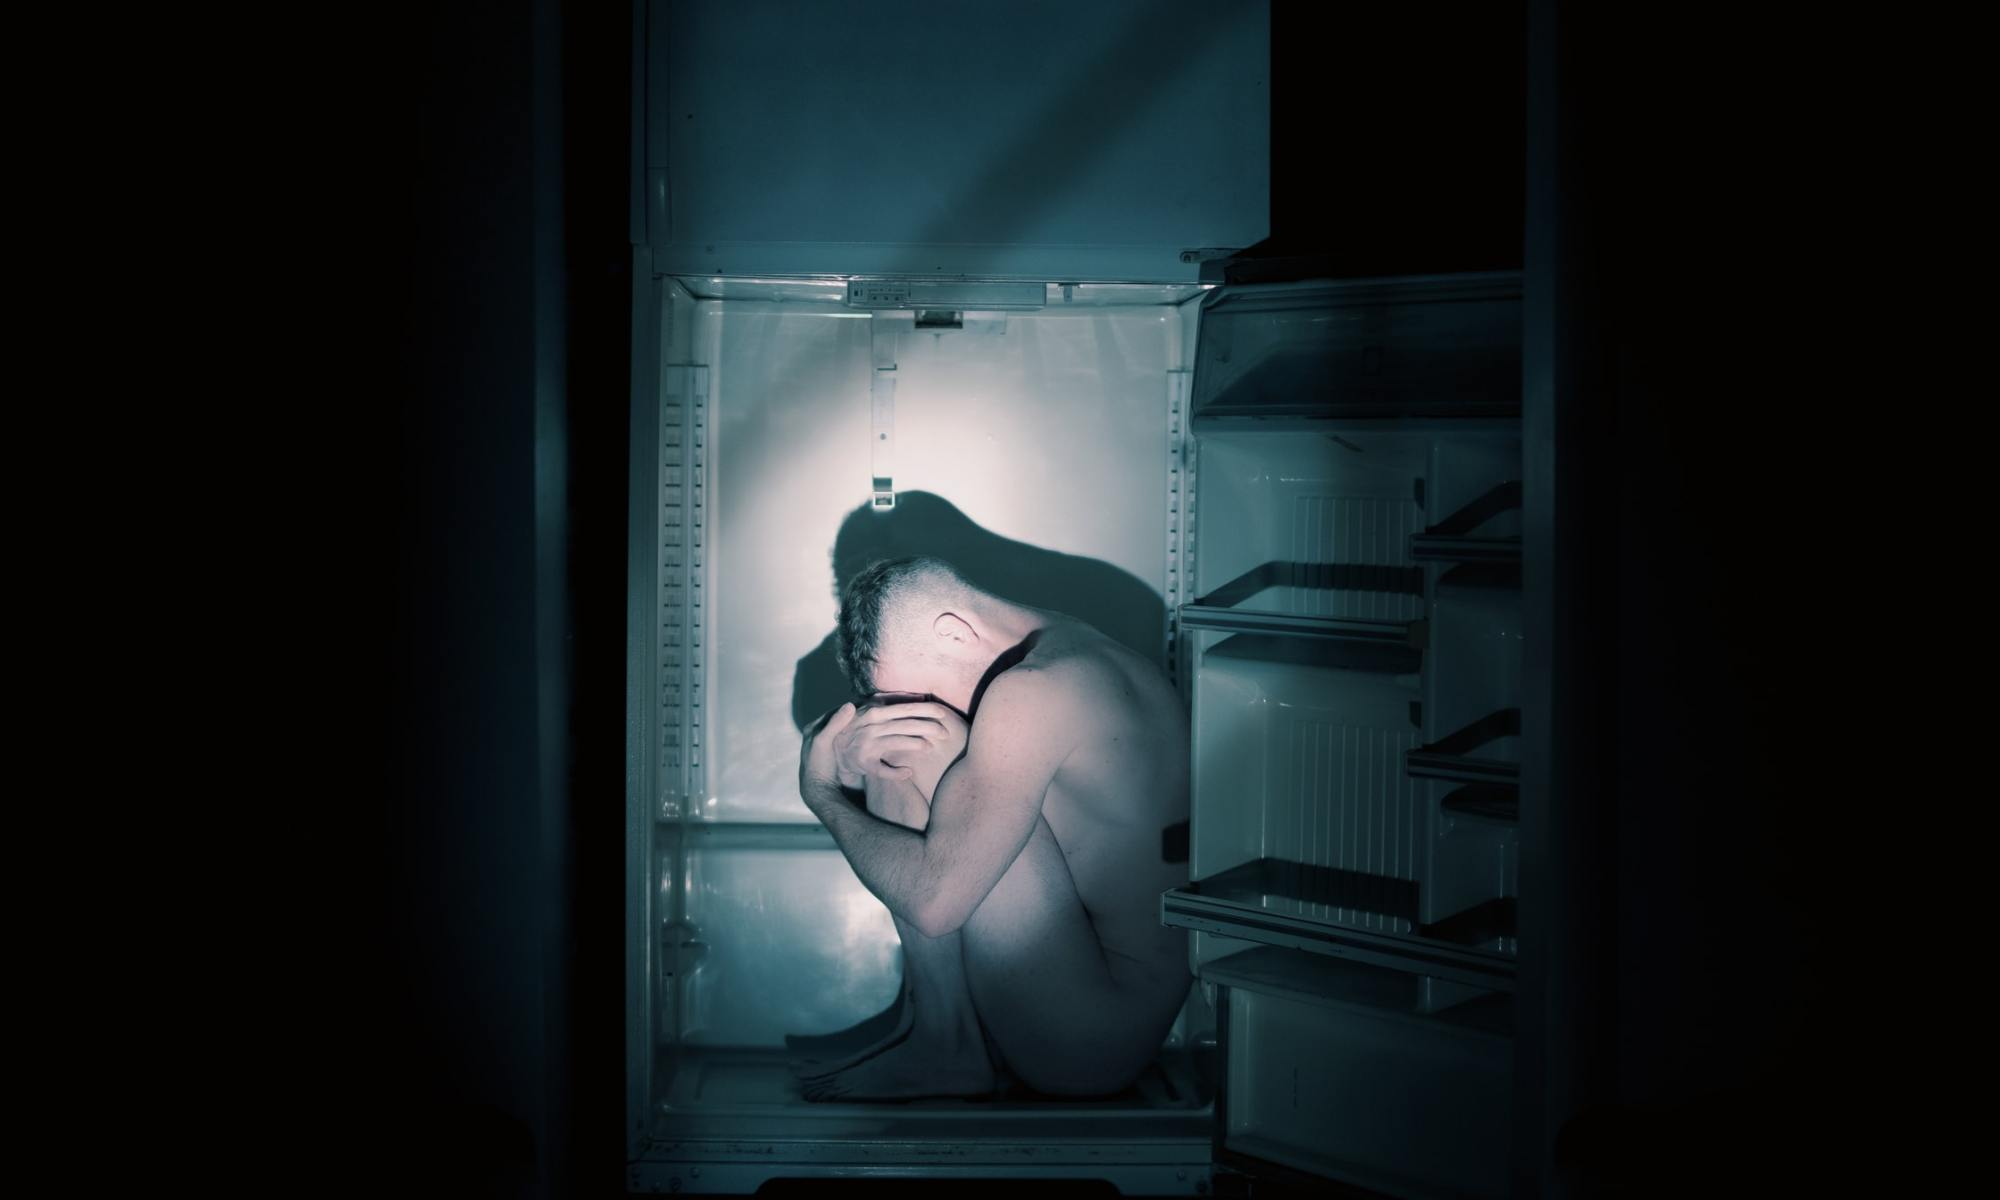 Naked man in dark room sitting in white refrigerator